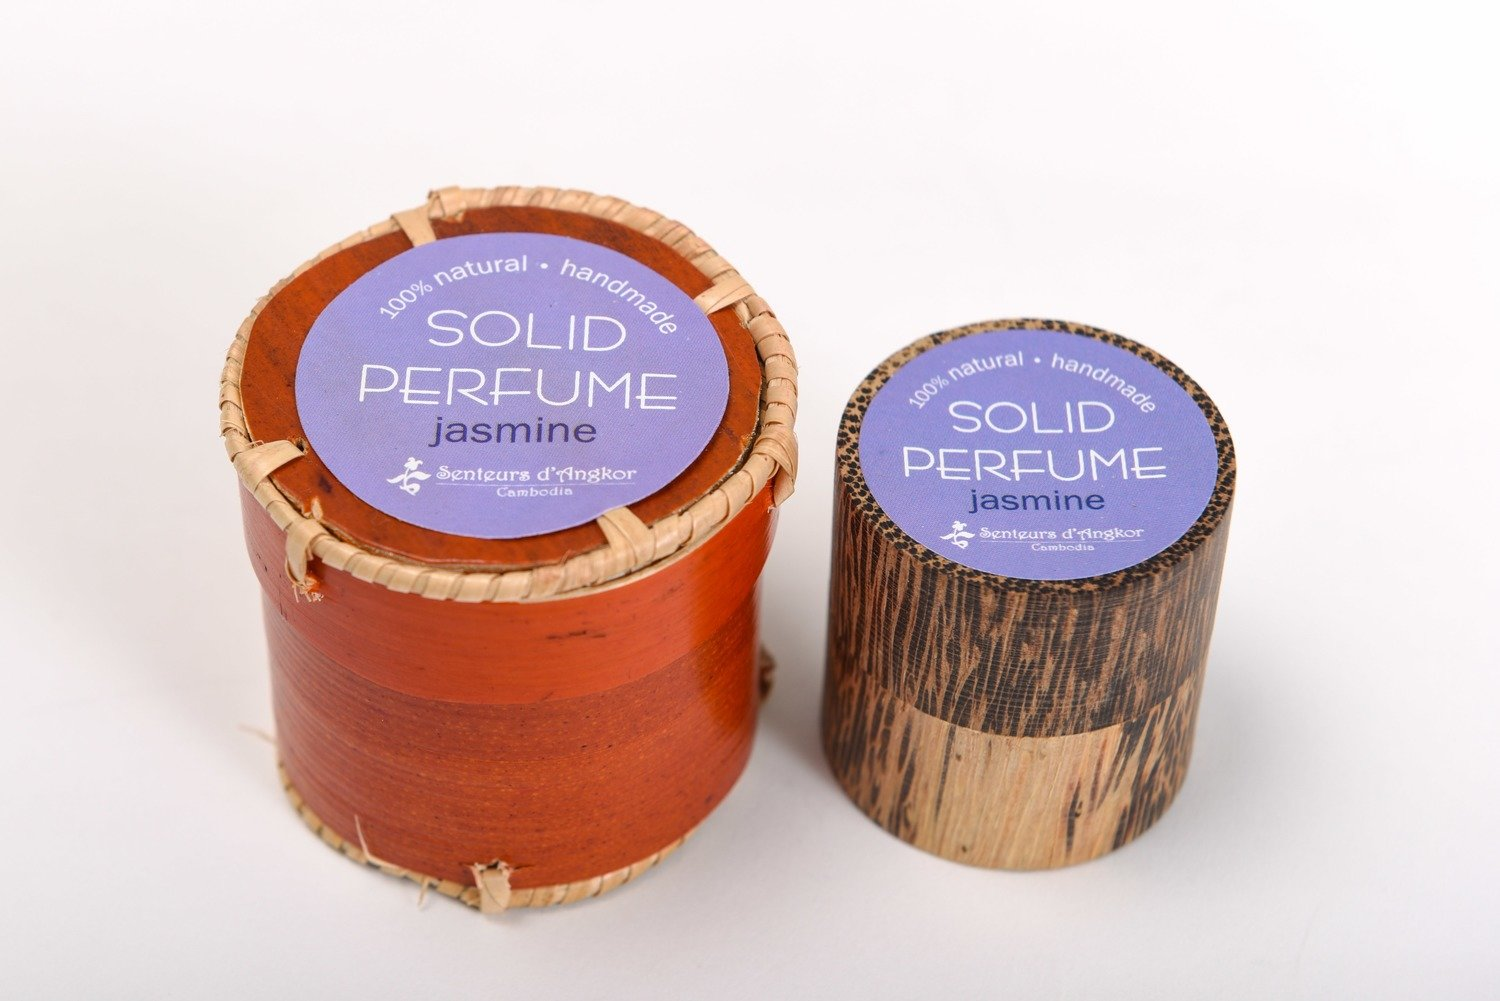 Solid Perfume in Palm Tree Pot